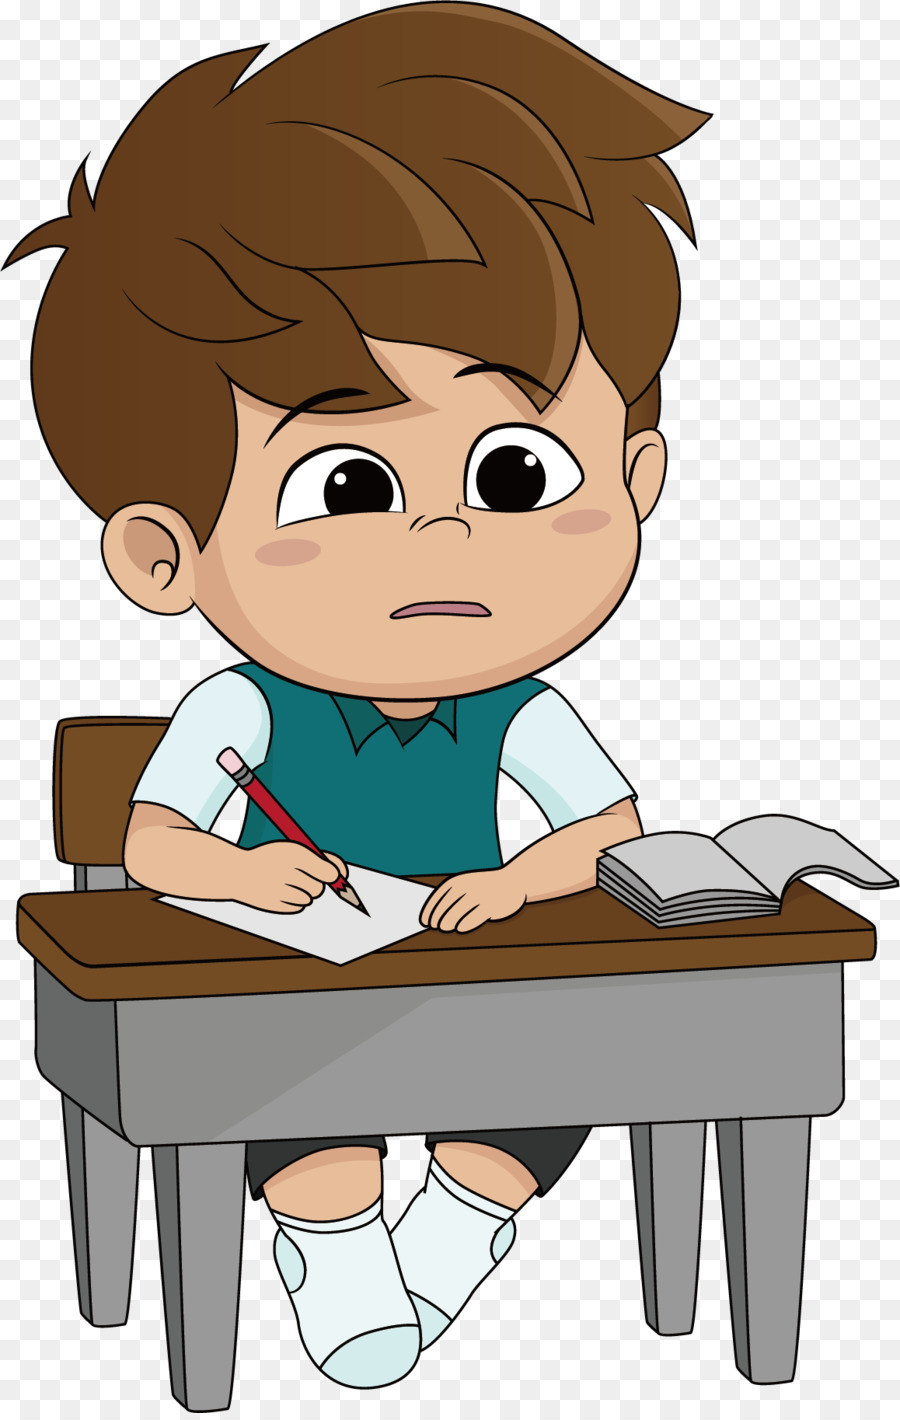 Cartoon Homework Illustration Thinking Png Download